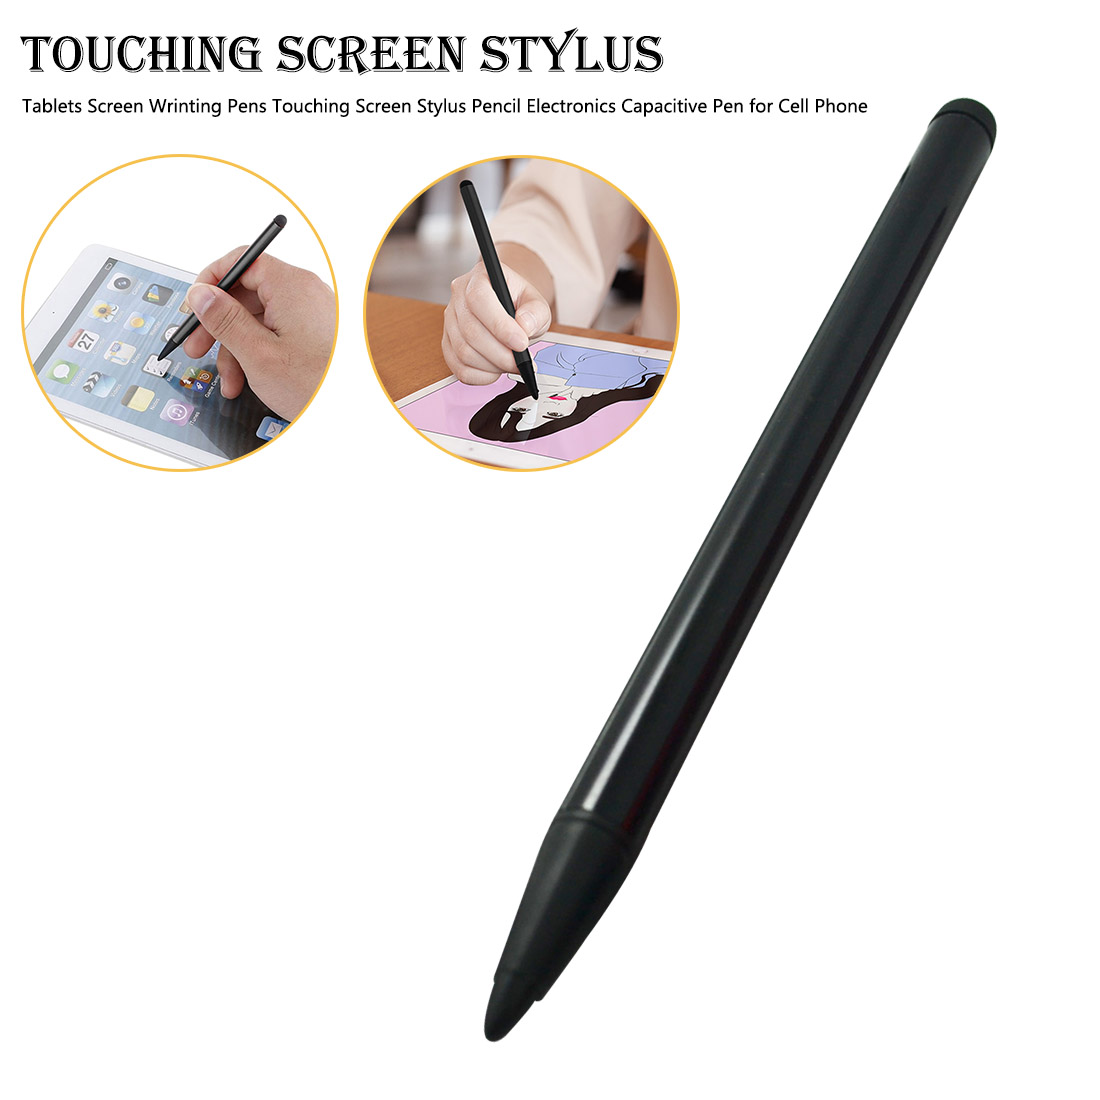 Tablets Screen Writing Pen Support Capacitance Screen & Resistance Screen Stylus Pen for Smartphone Tablet Games Console